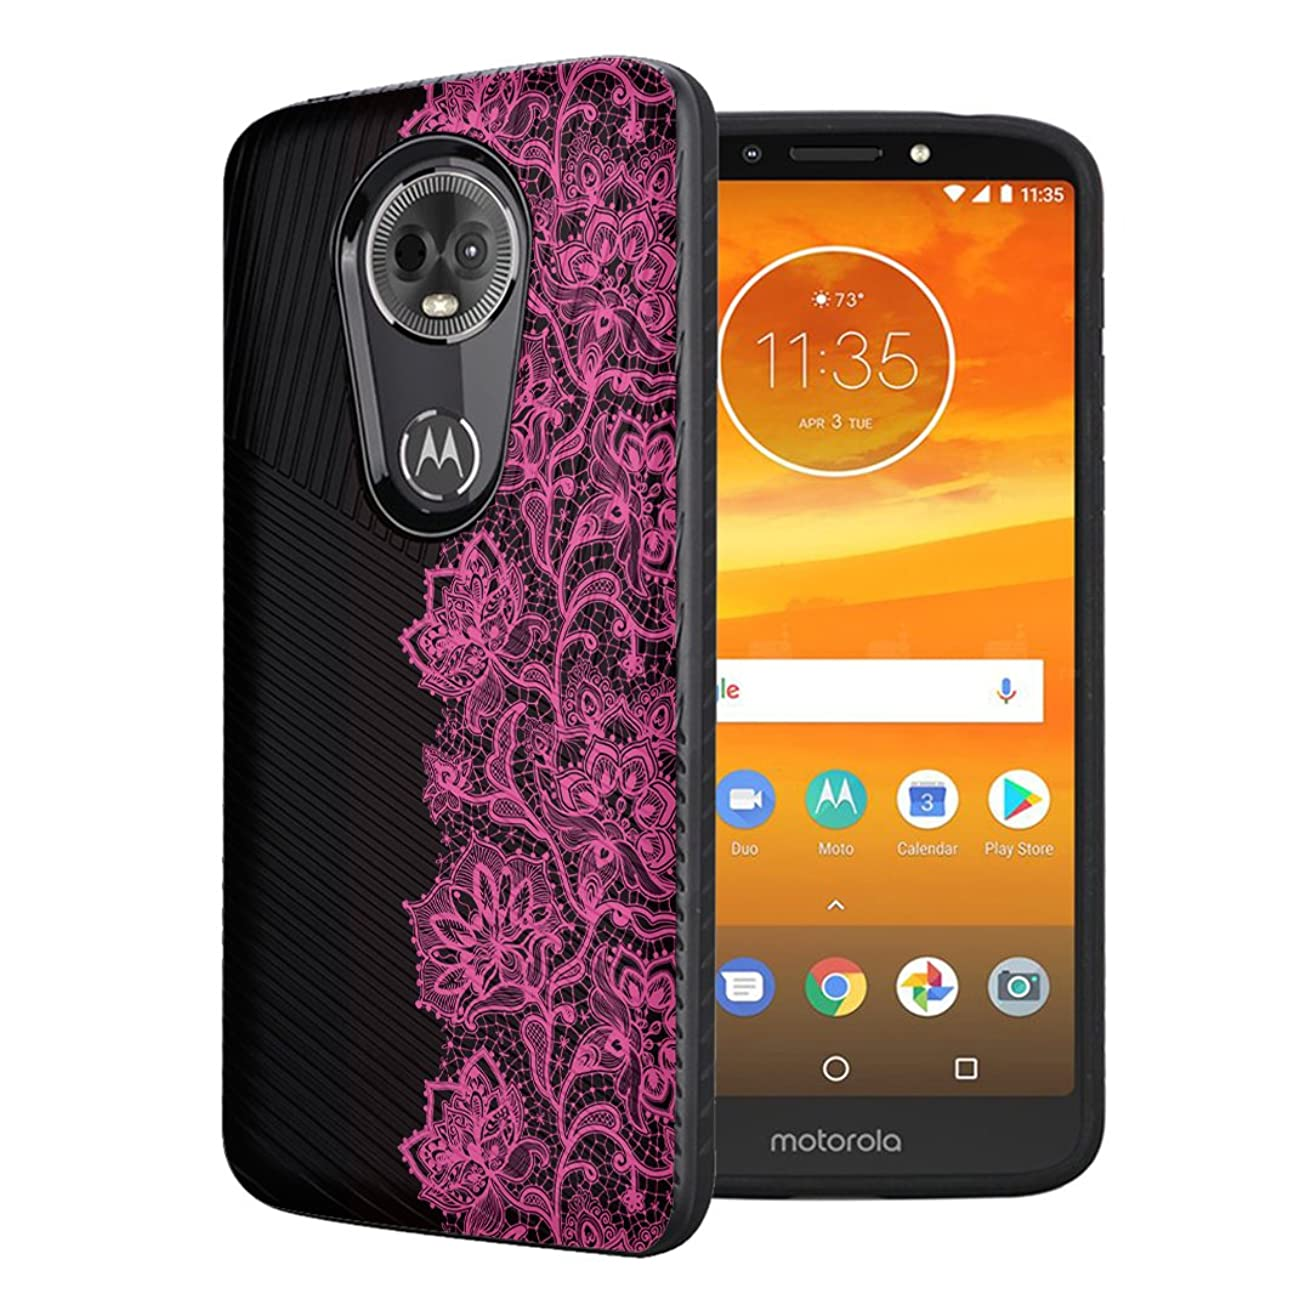 Moriko Case Compatible with Moto G7 Power, Moto G7 Supra [Embossed Diagonal Lines Hybrid Slim Armor Black Case] for Motorola Moto G7 Power - (Pink Lace)